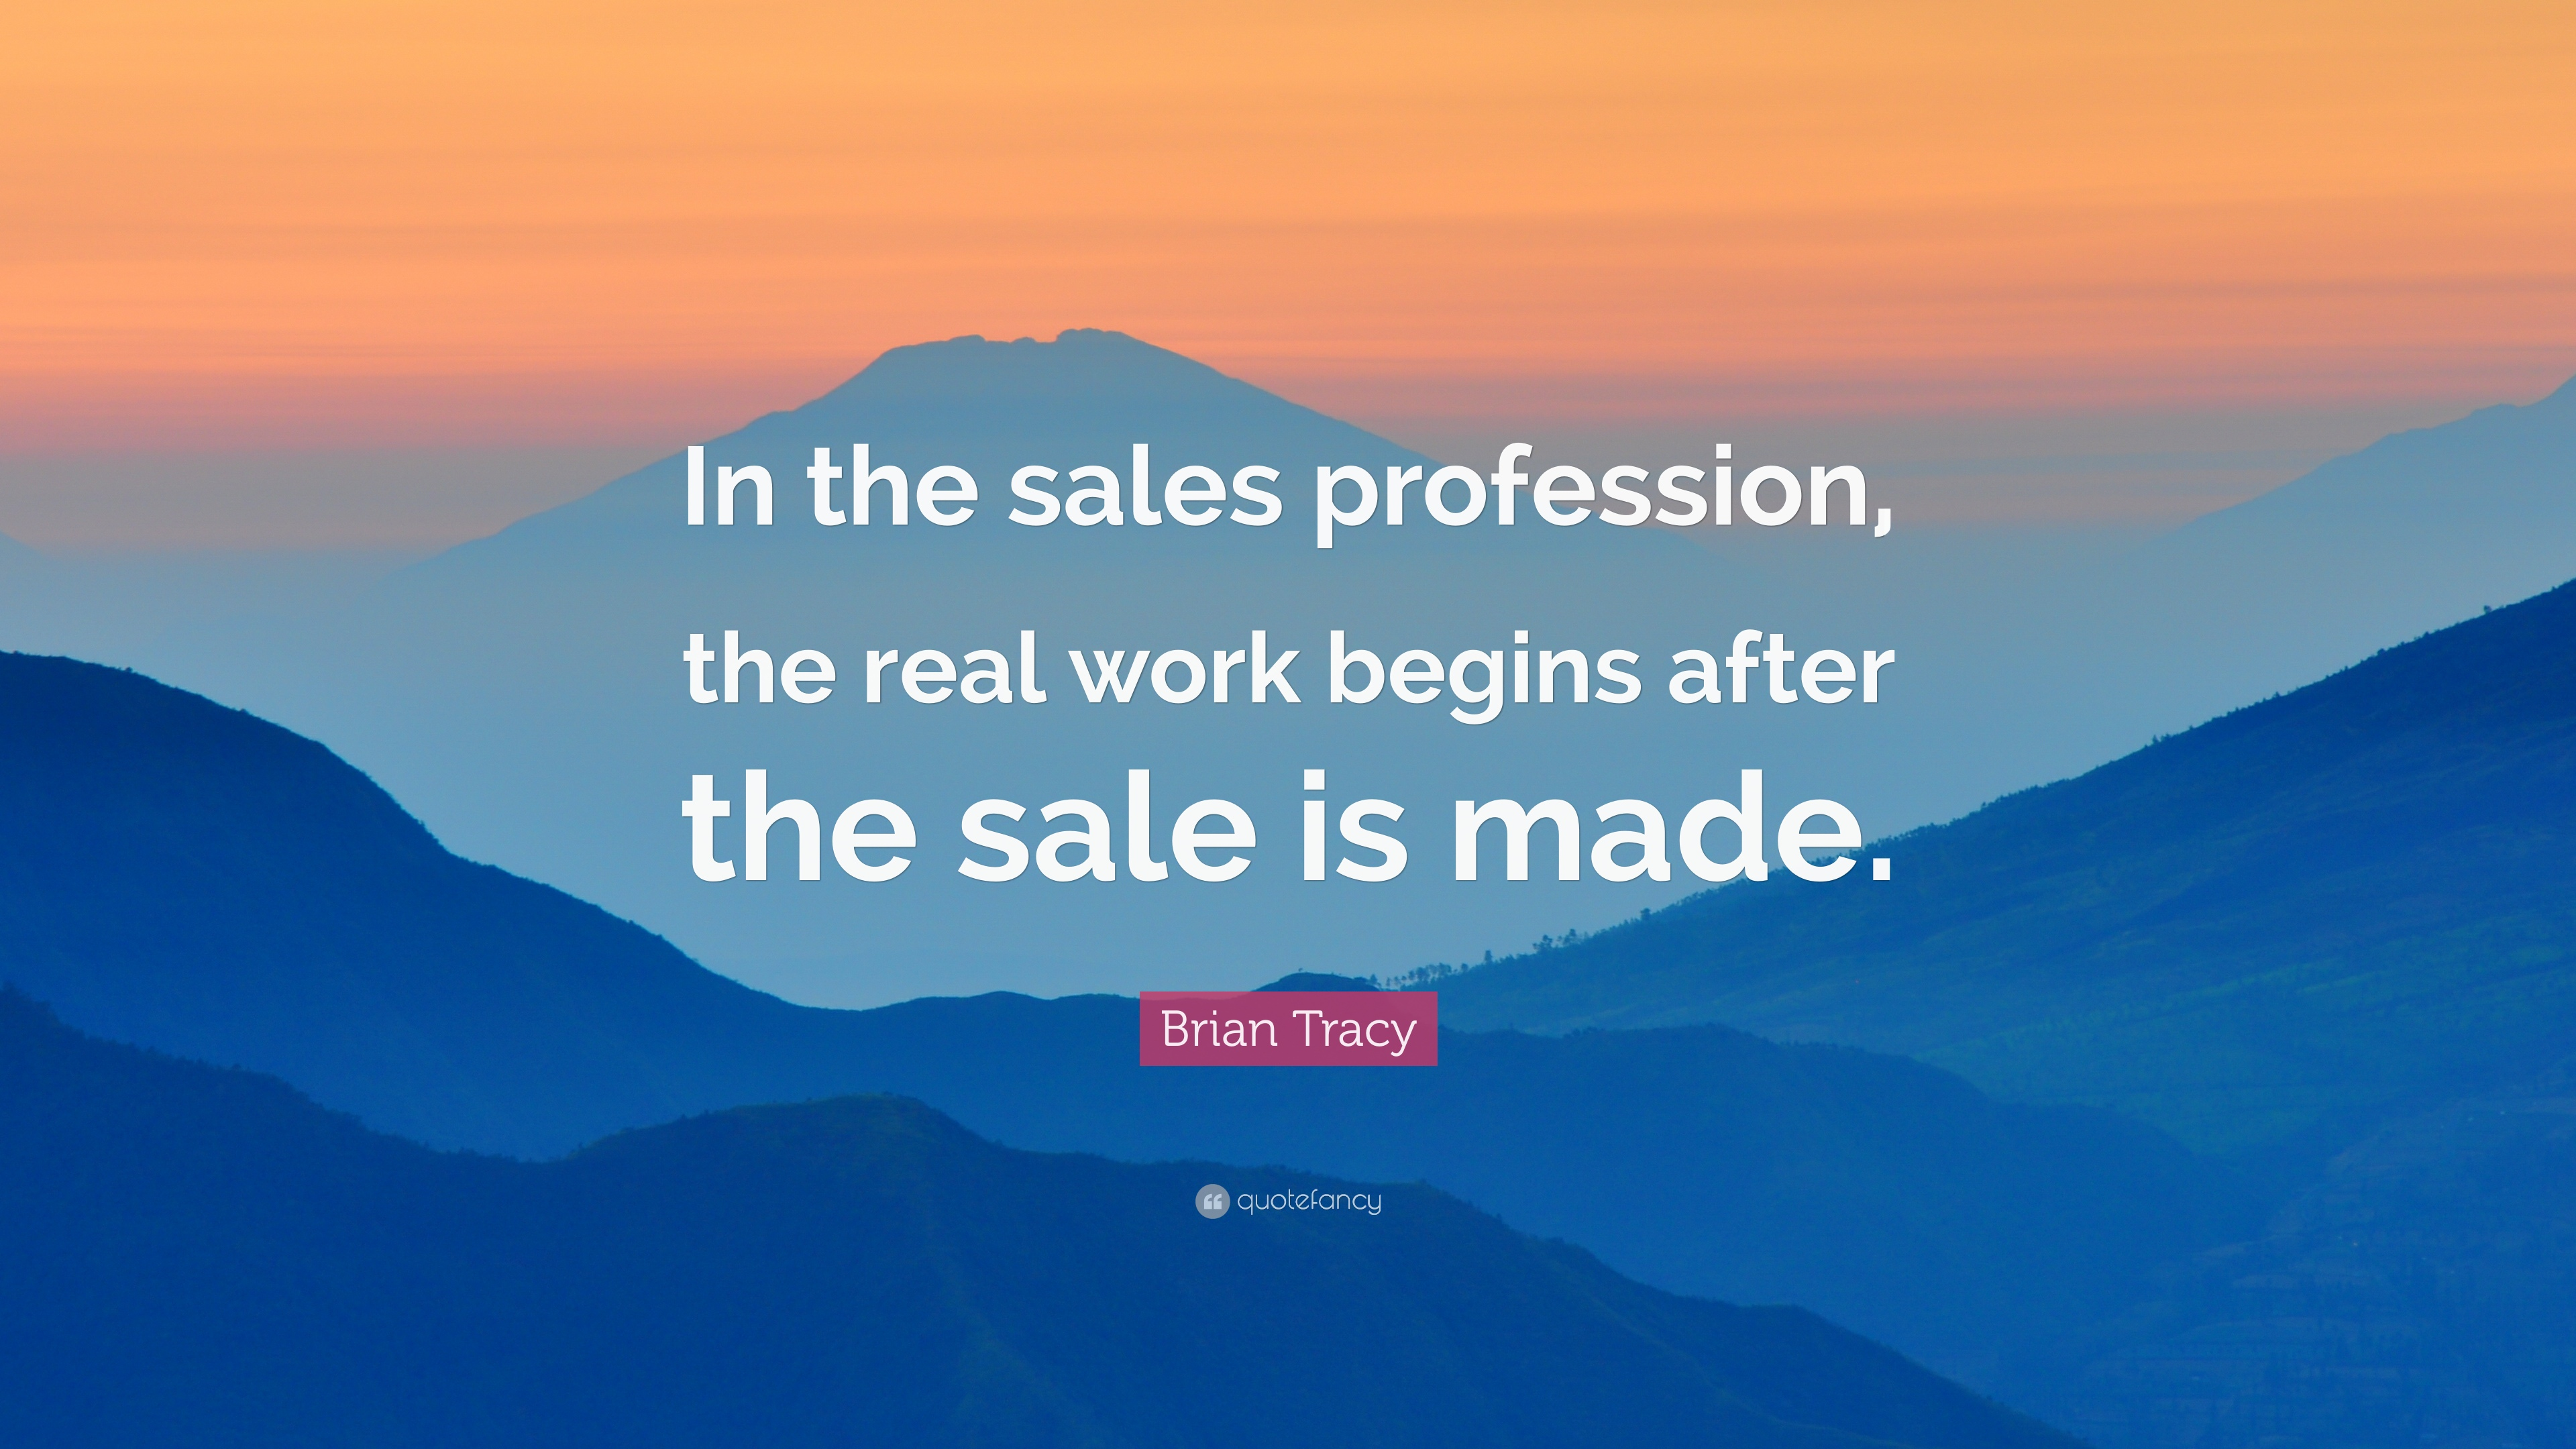 brian tracy quote in the sales profession the real work begins